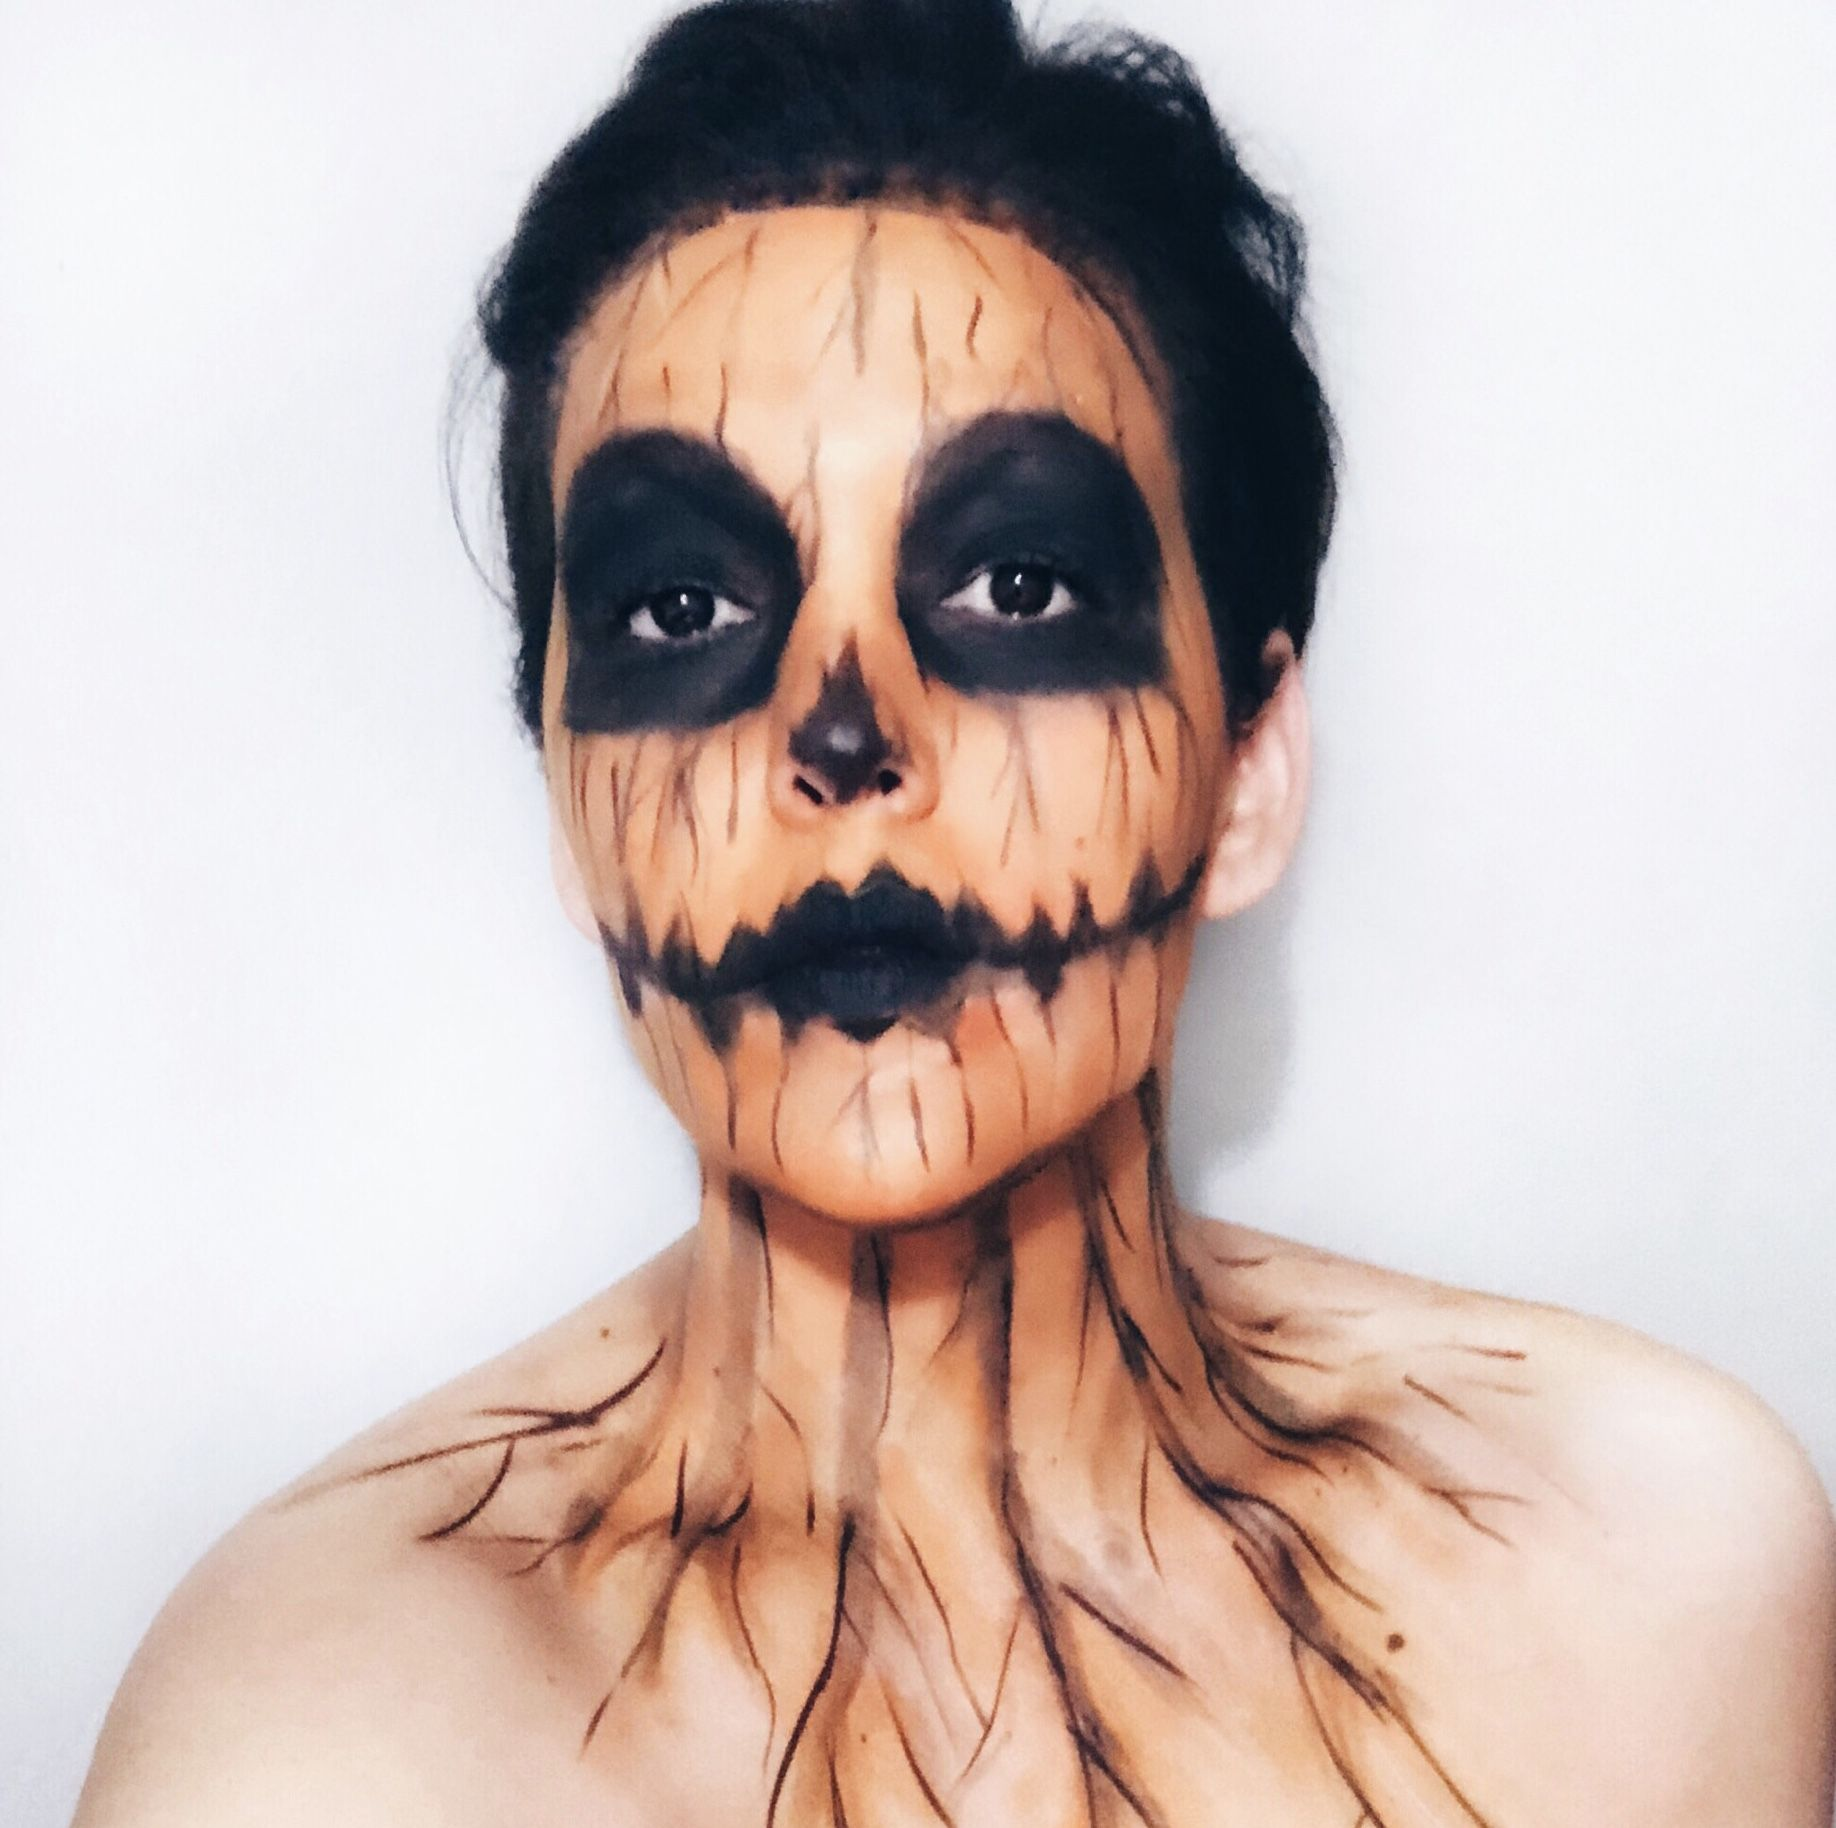 Pumpkin skull 💀 1stHalloweenLook Halloween face makeup